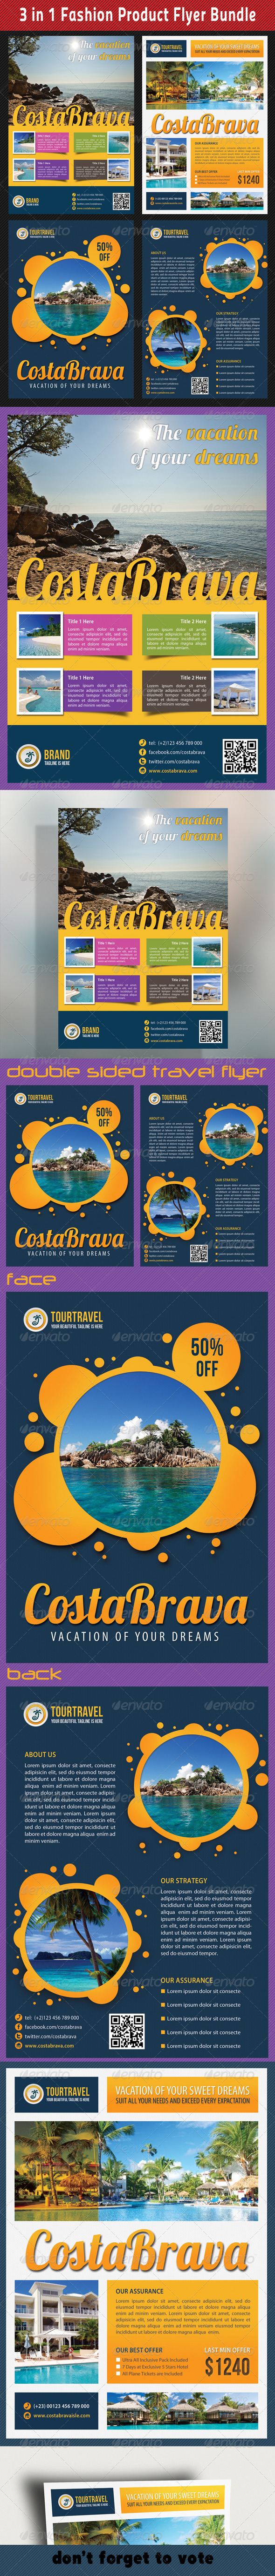 GraphicRiver 3 in 1 Tour Travel Flyer Bundle 01 6713838